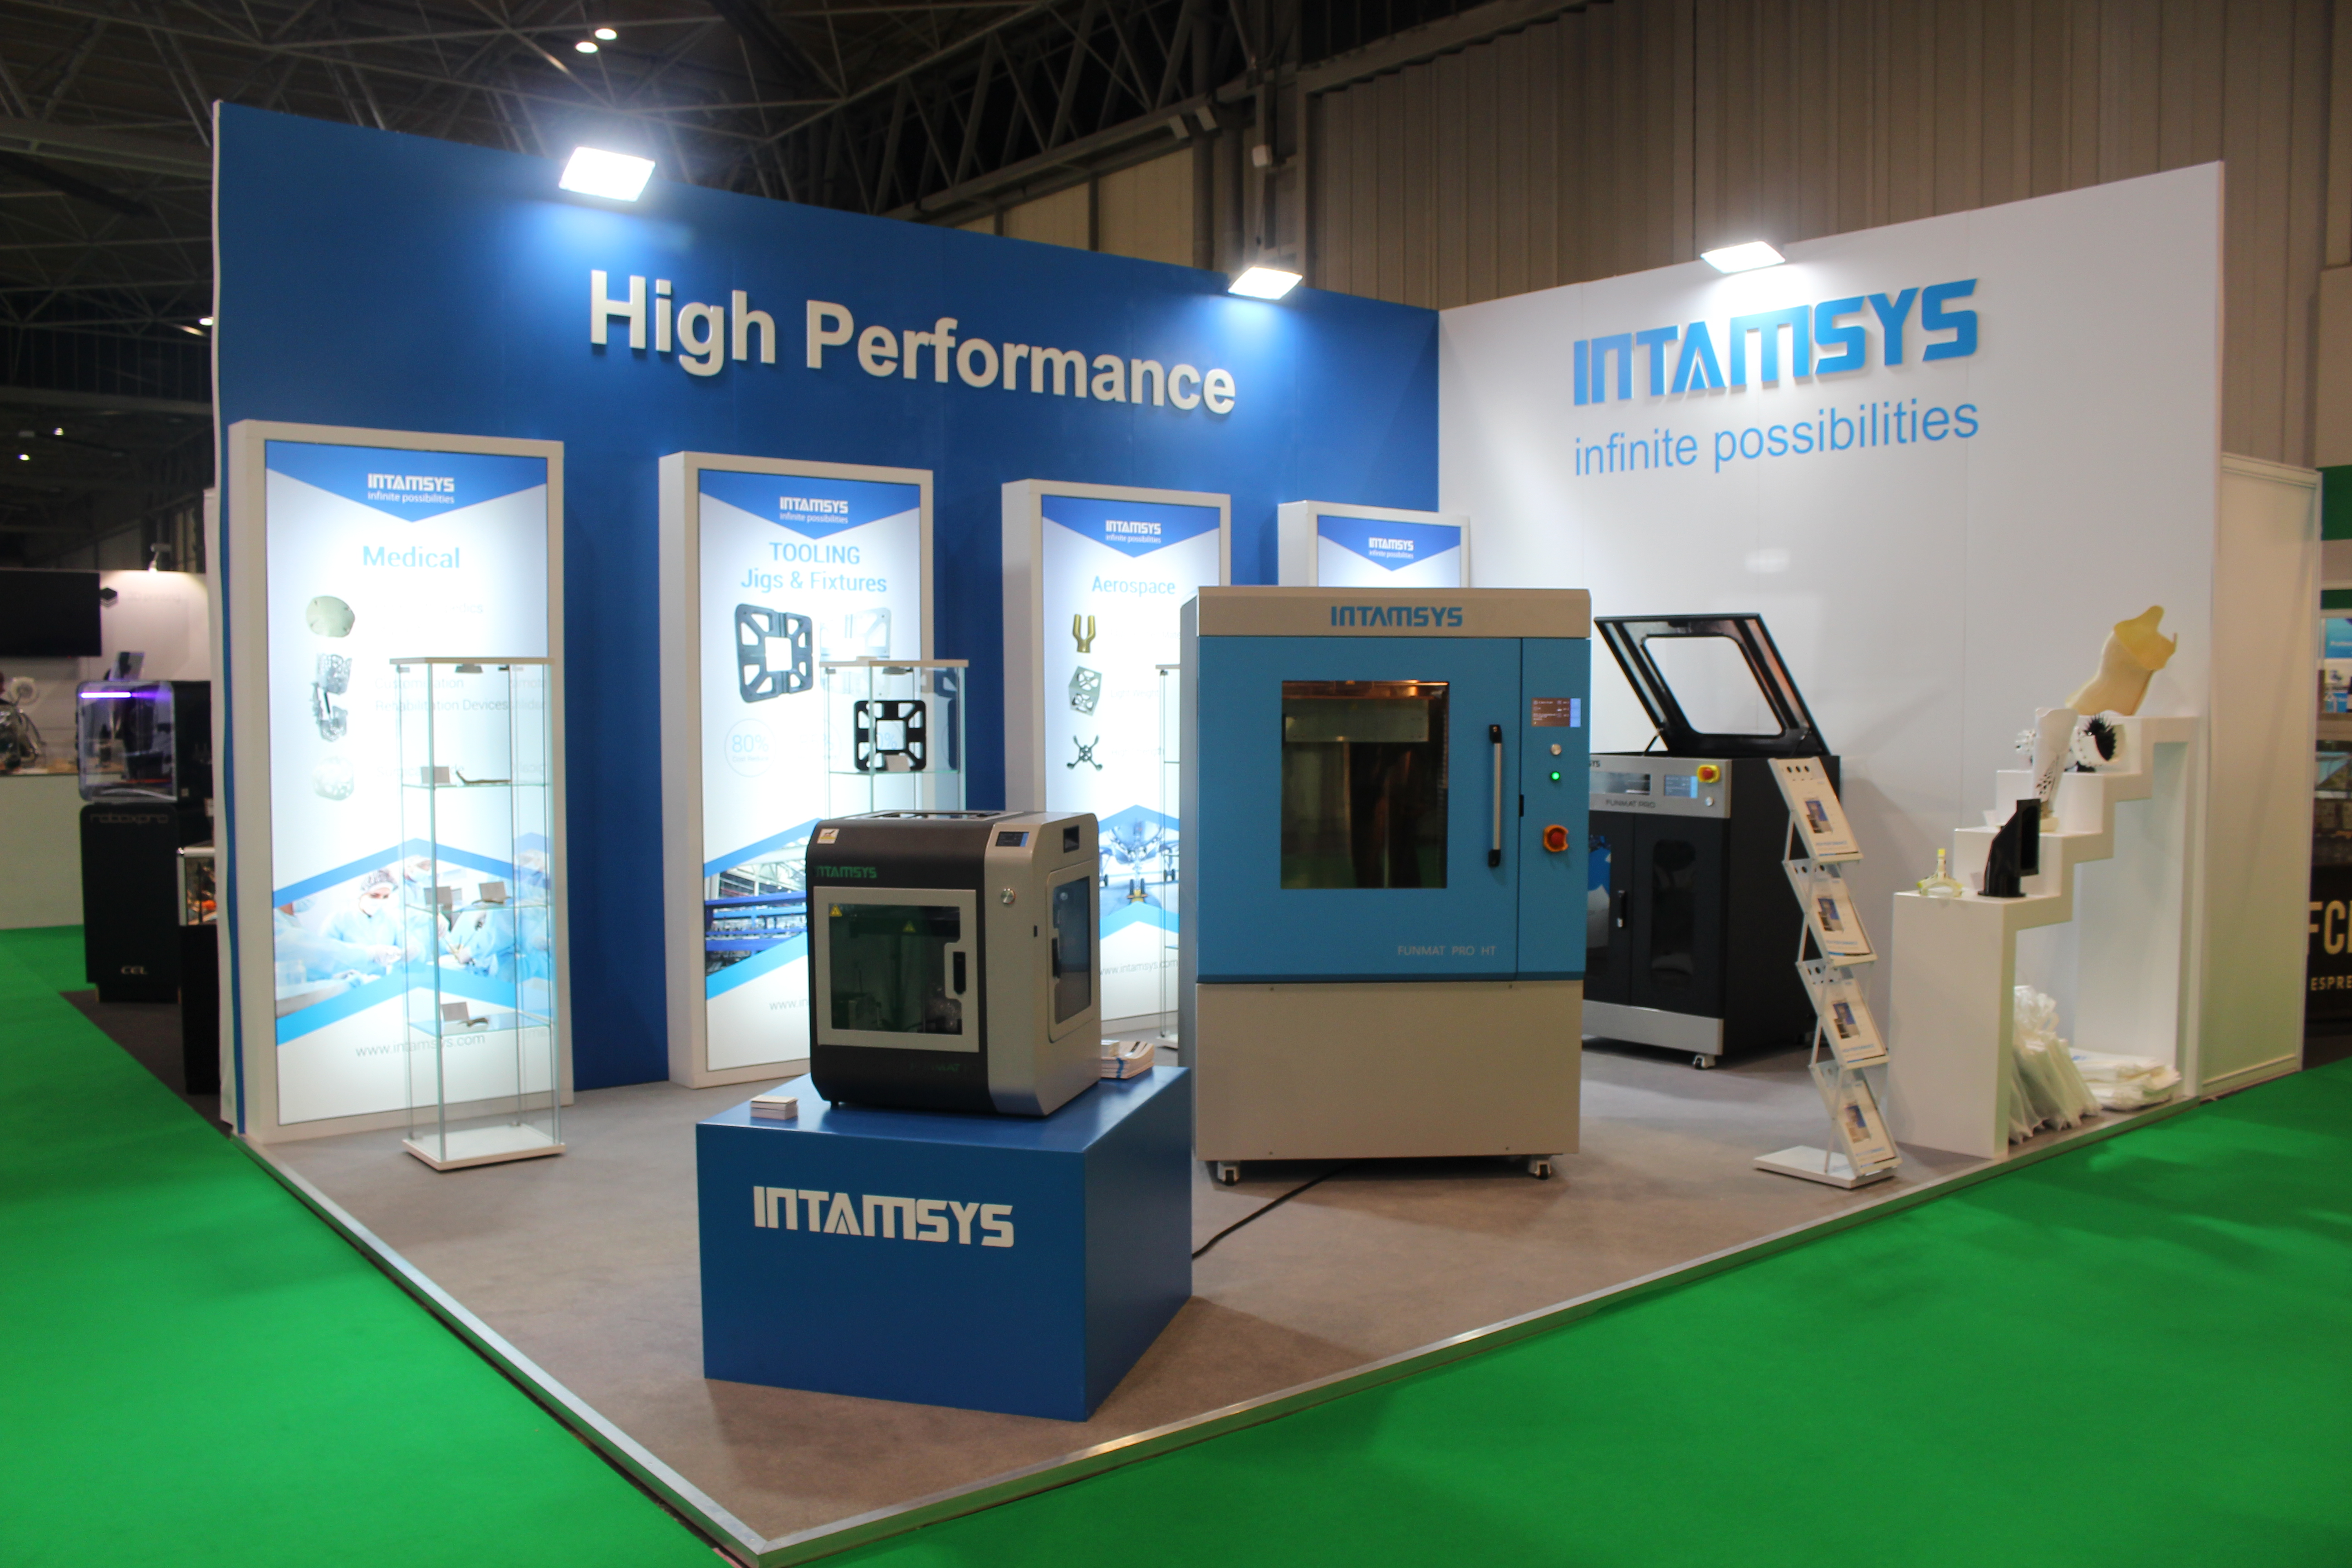 Intamsys Booth TCT Show 2018